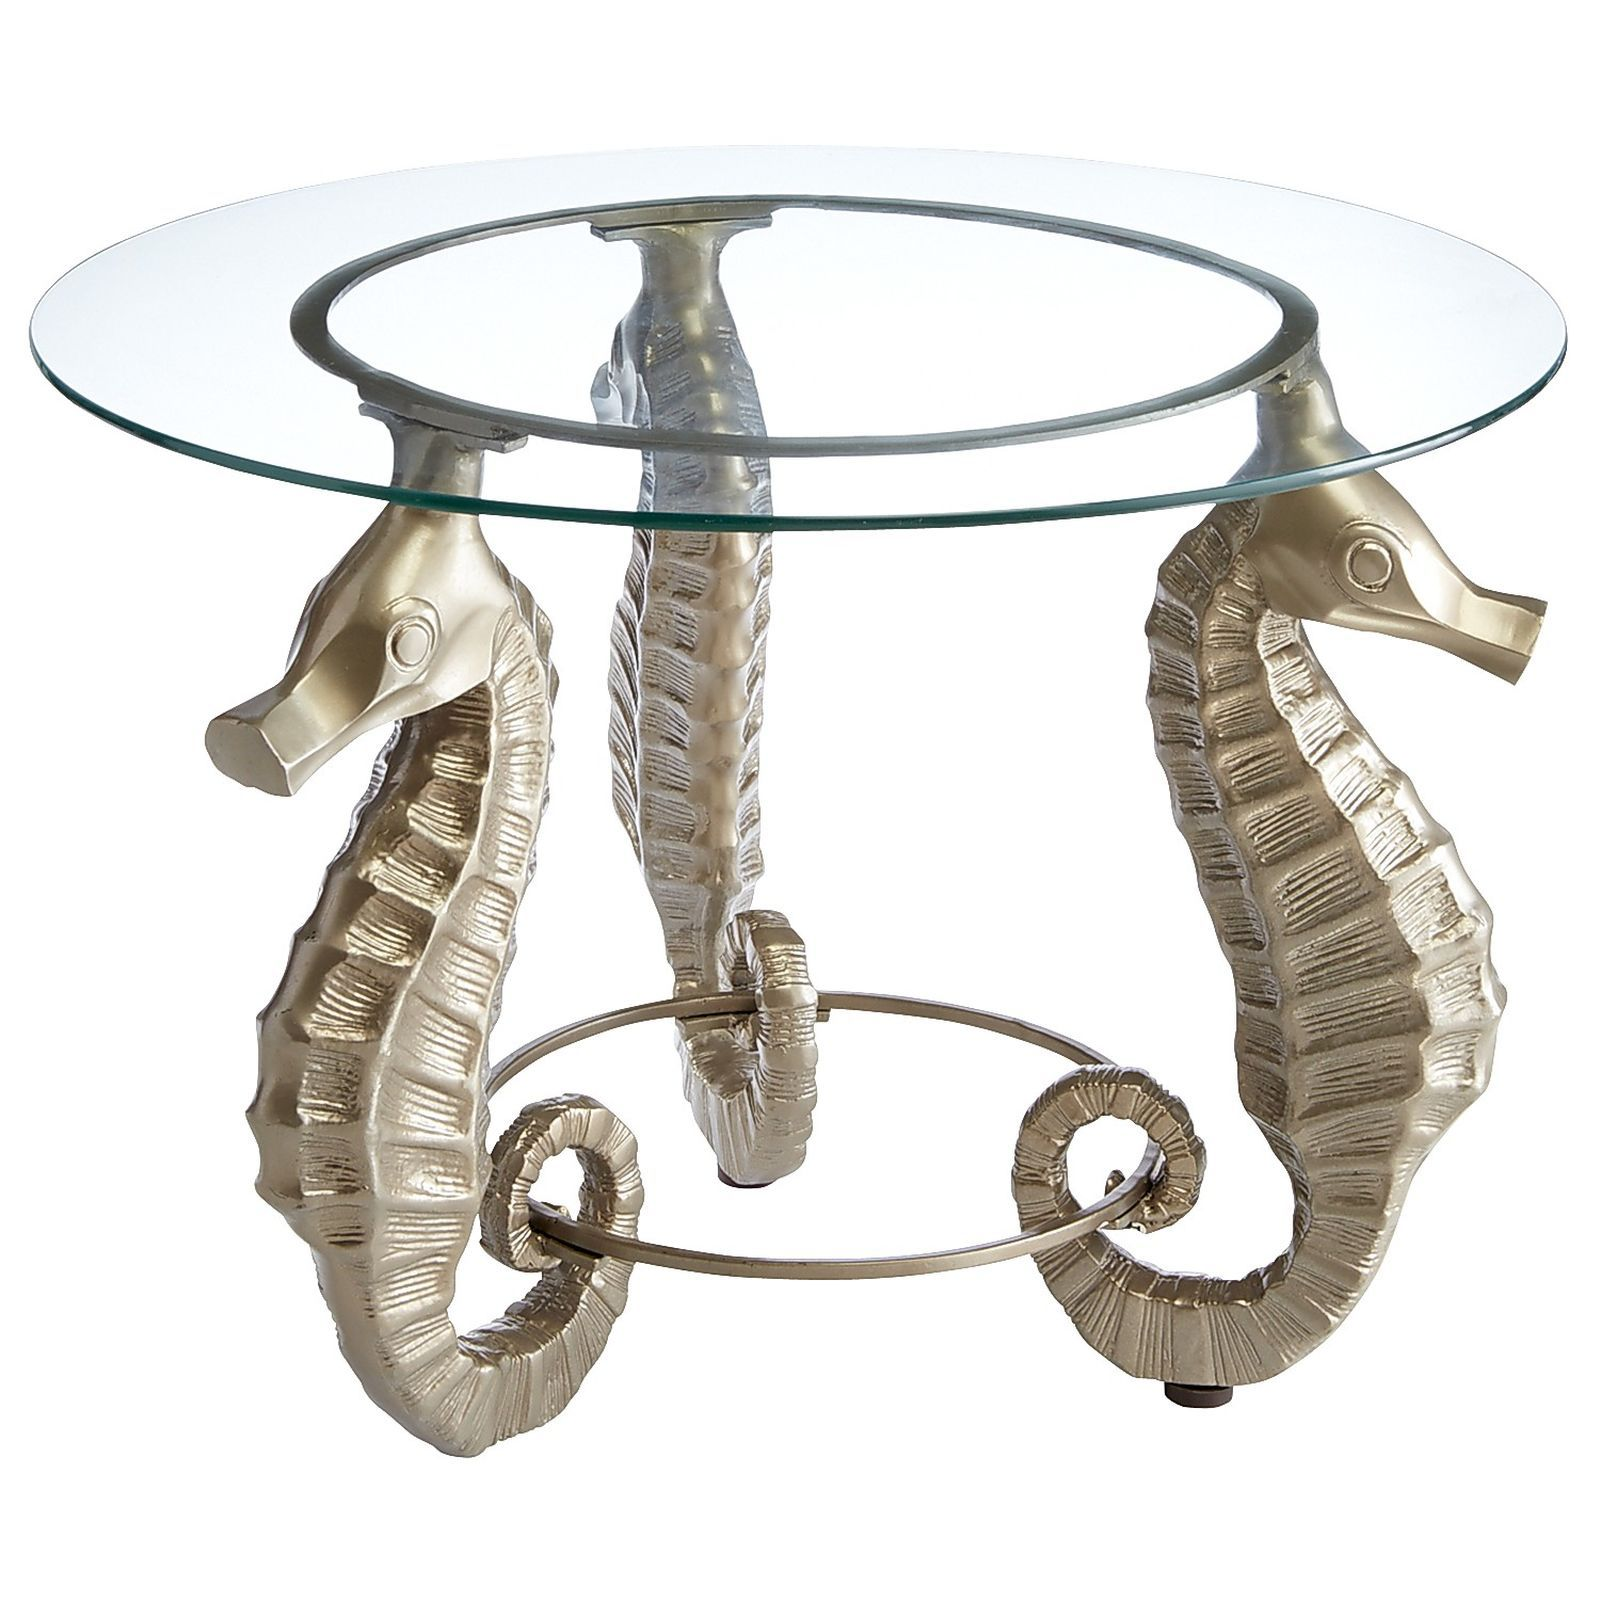 SEAHORSE COFFEE TABLE Details Dimensions This Coffee Table - Seahorse coffee table